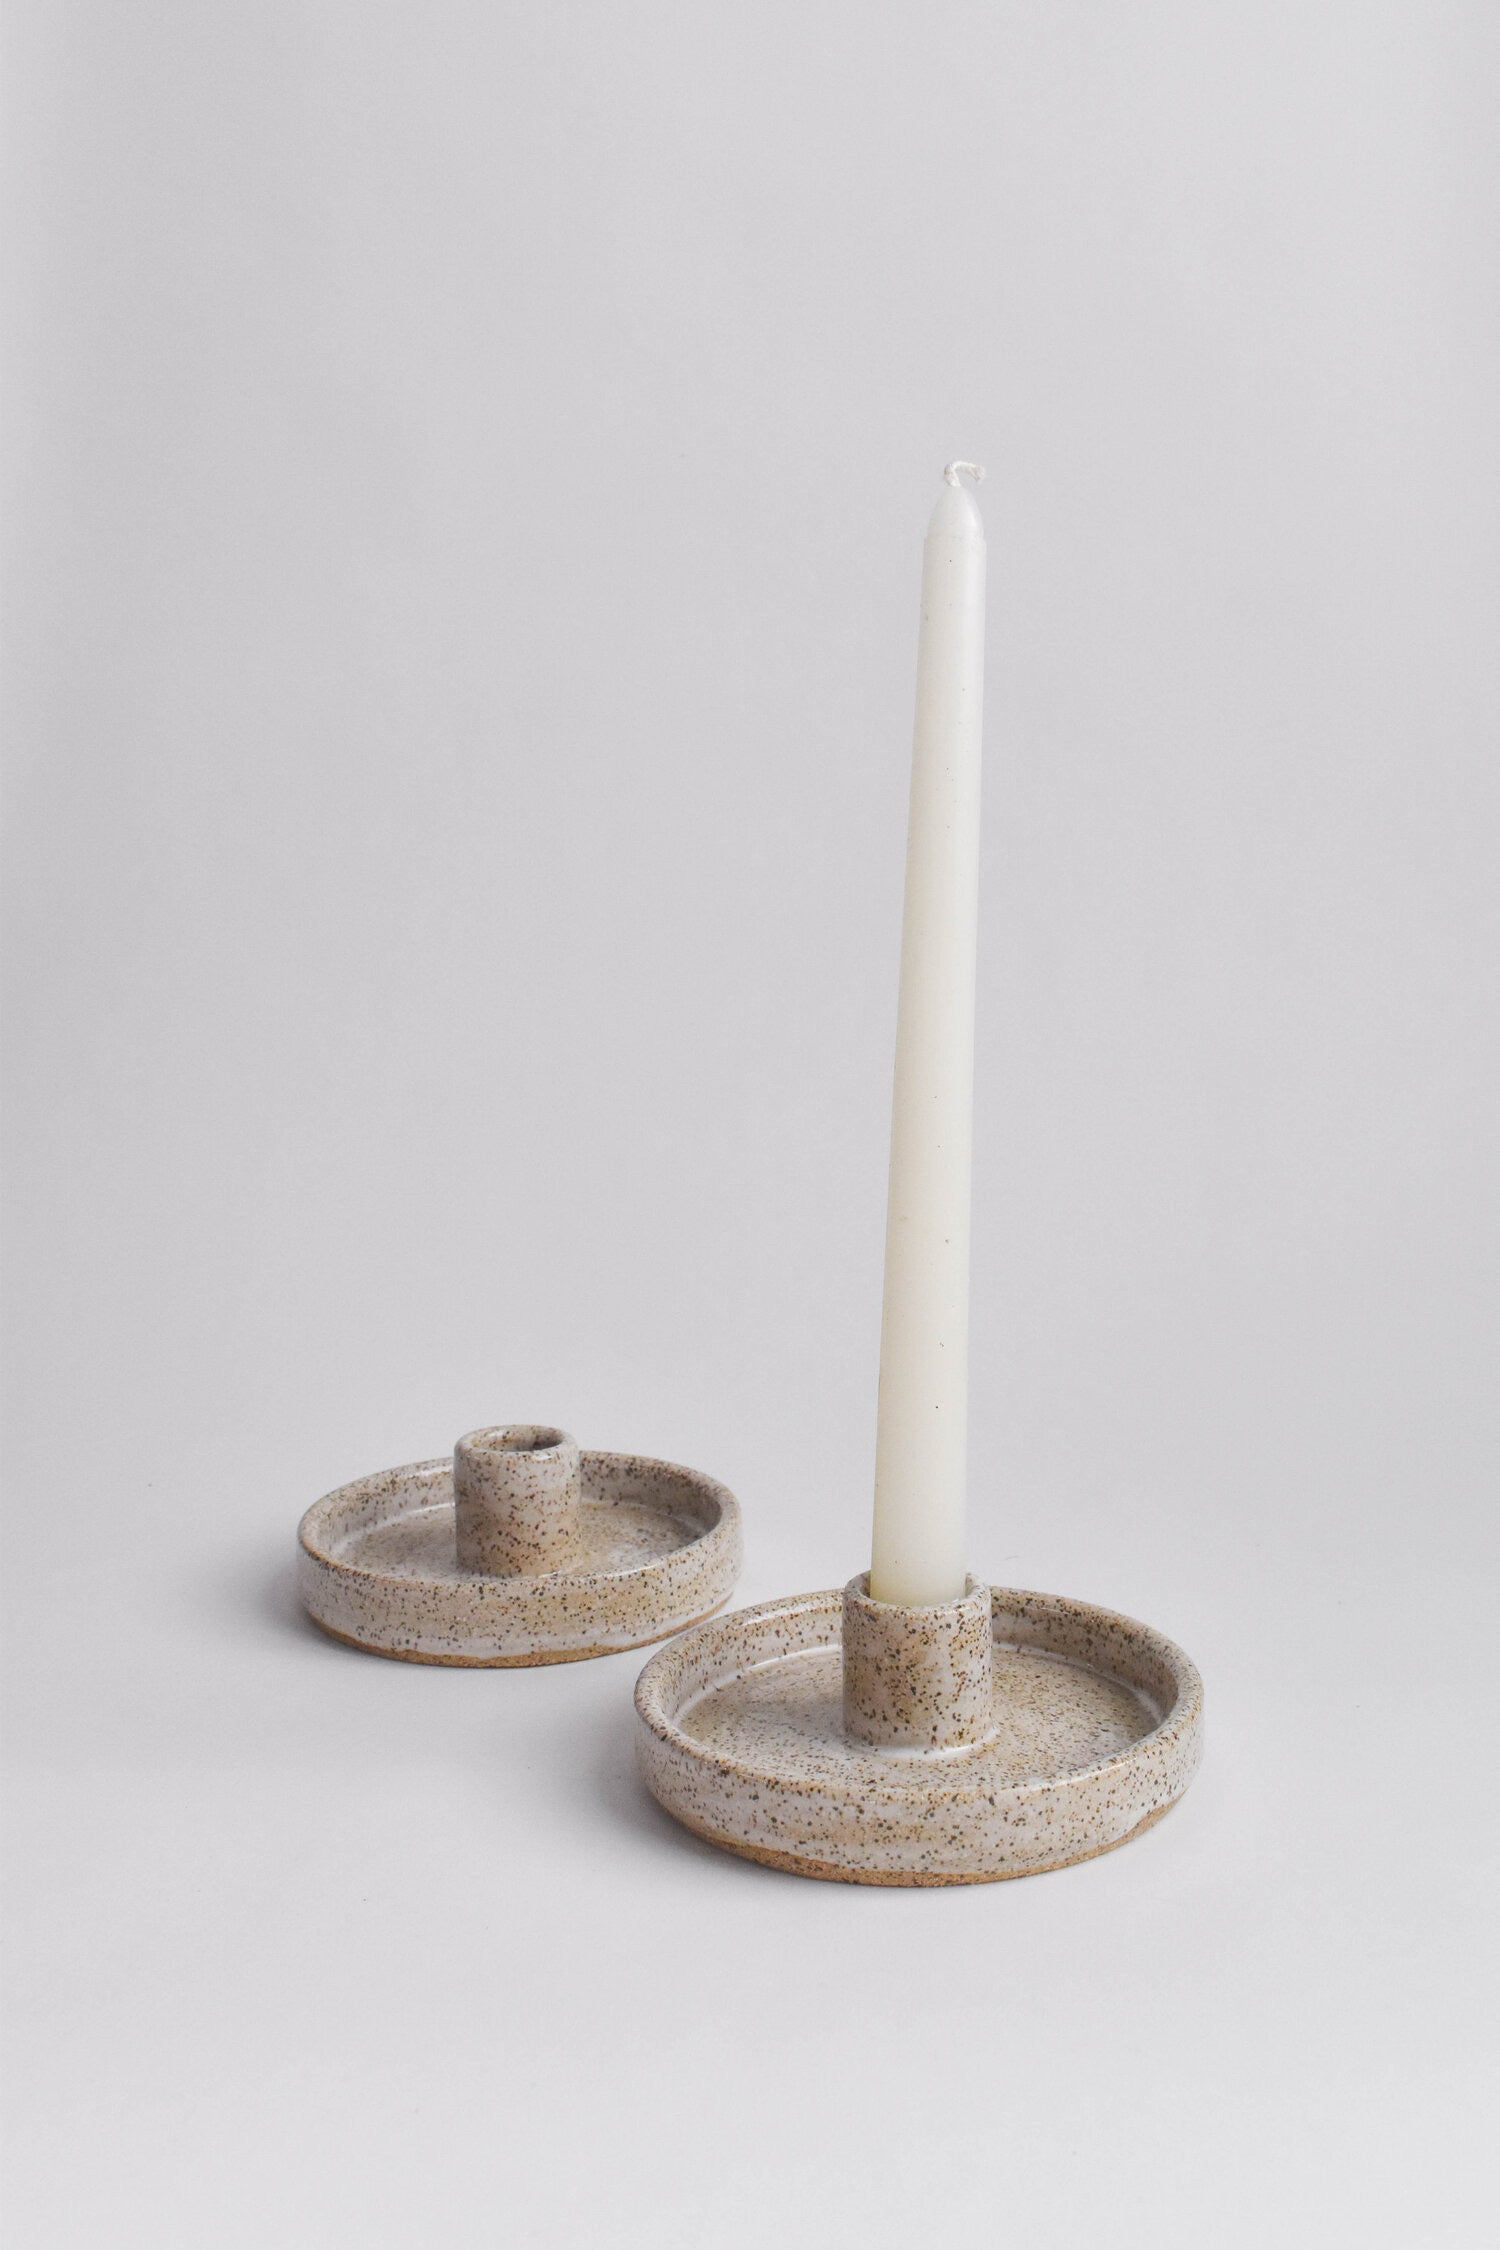 Wild Bower Studio - Speckled Candle Holder